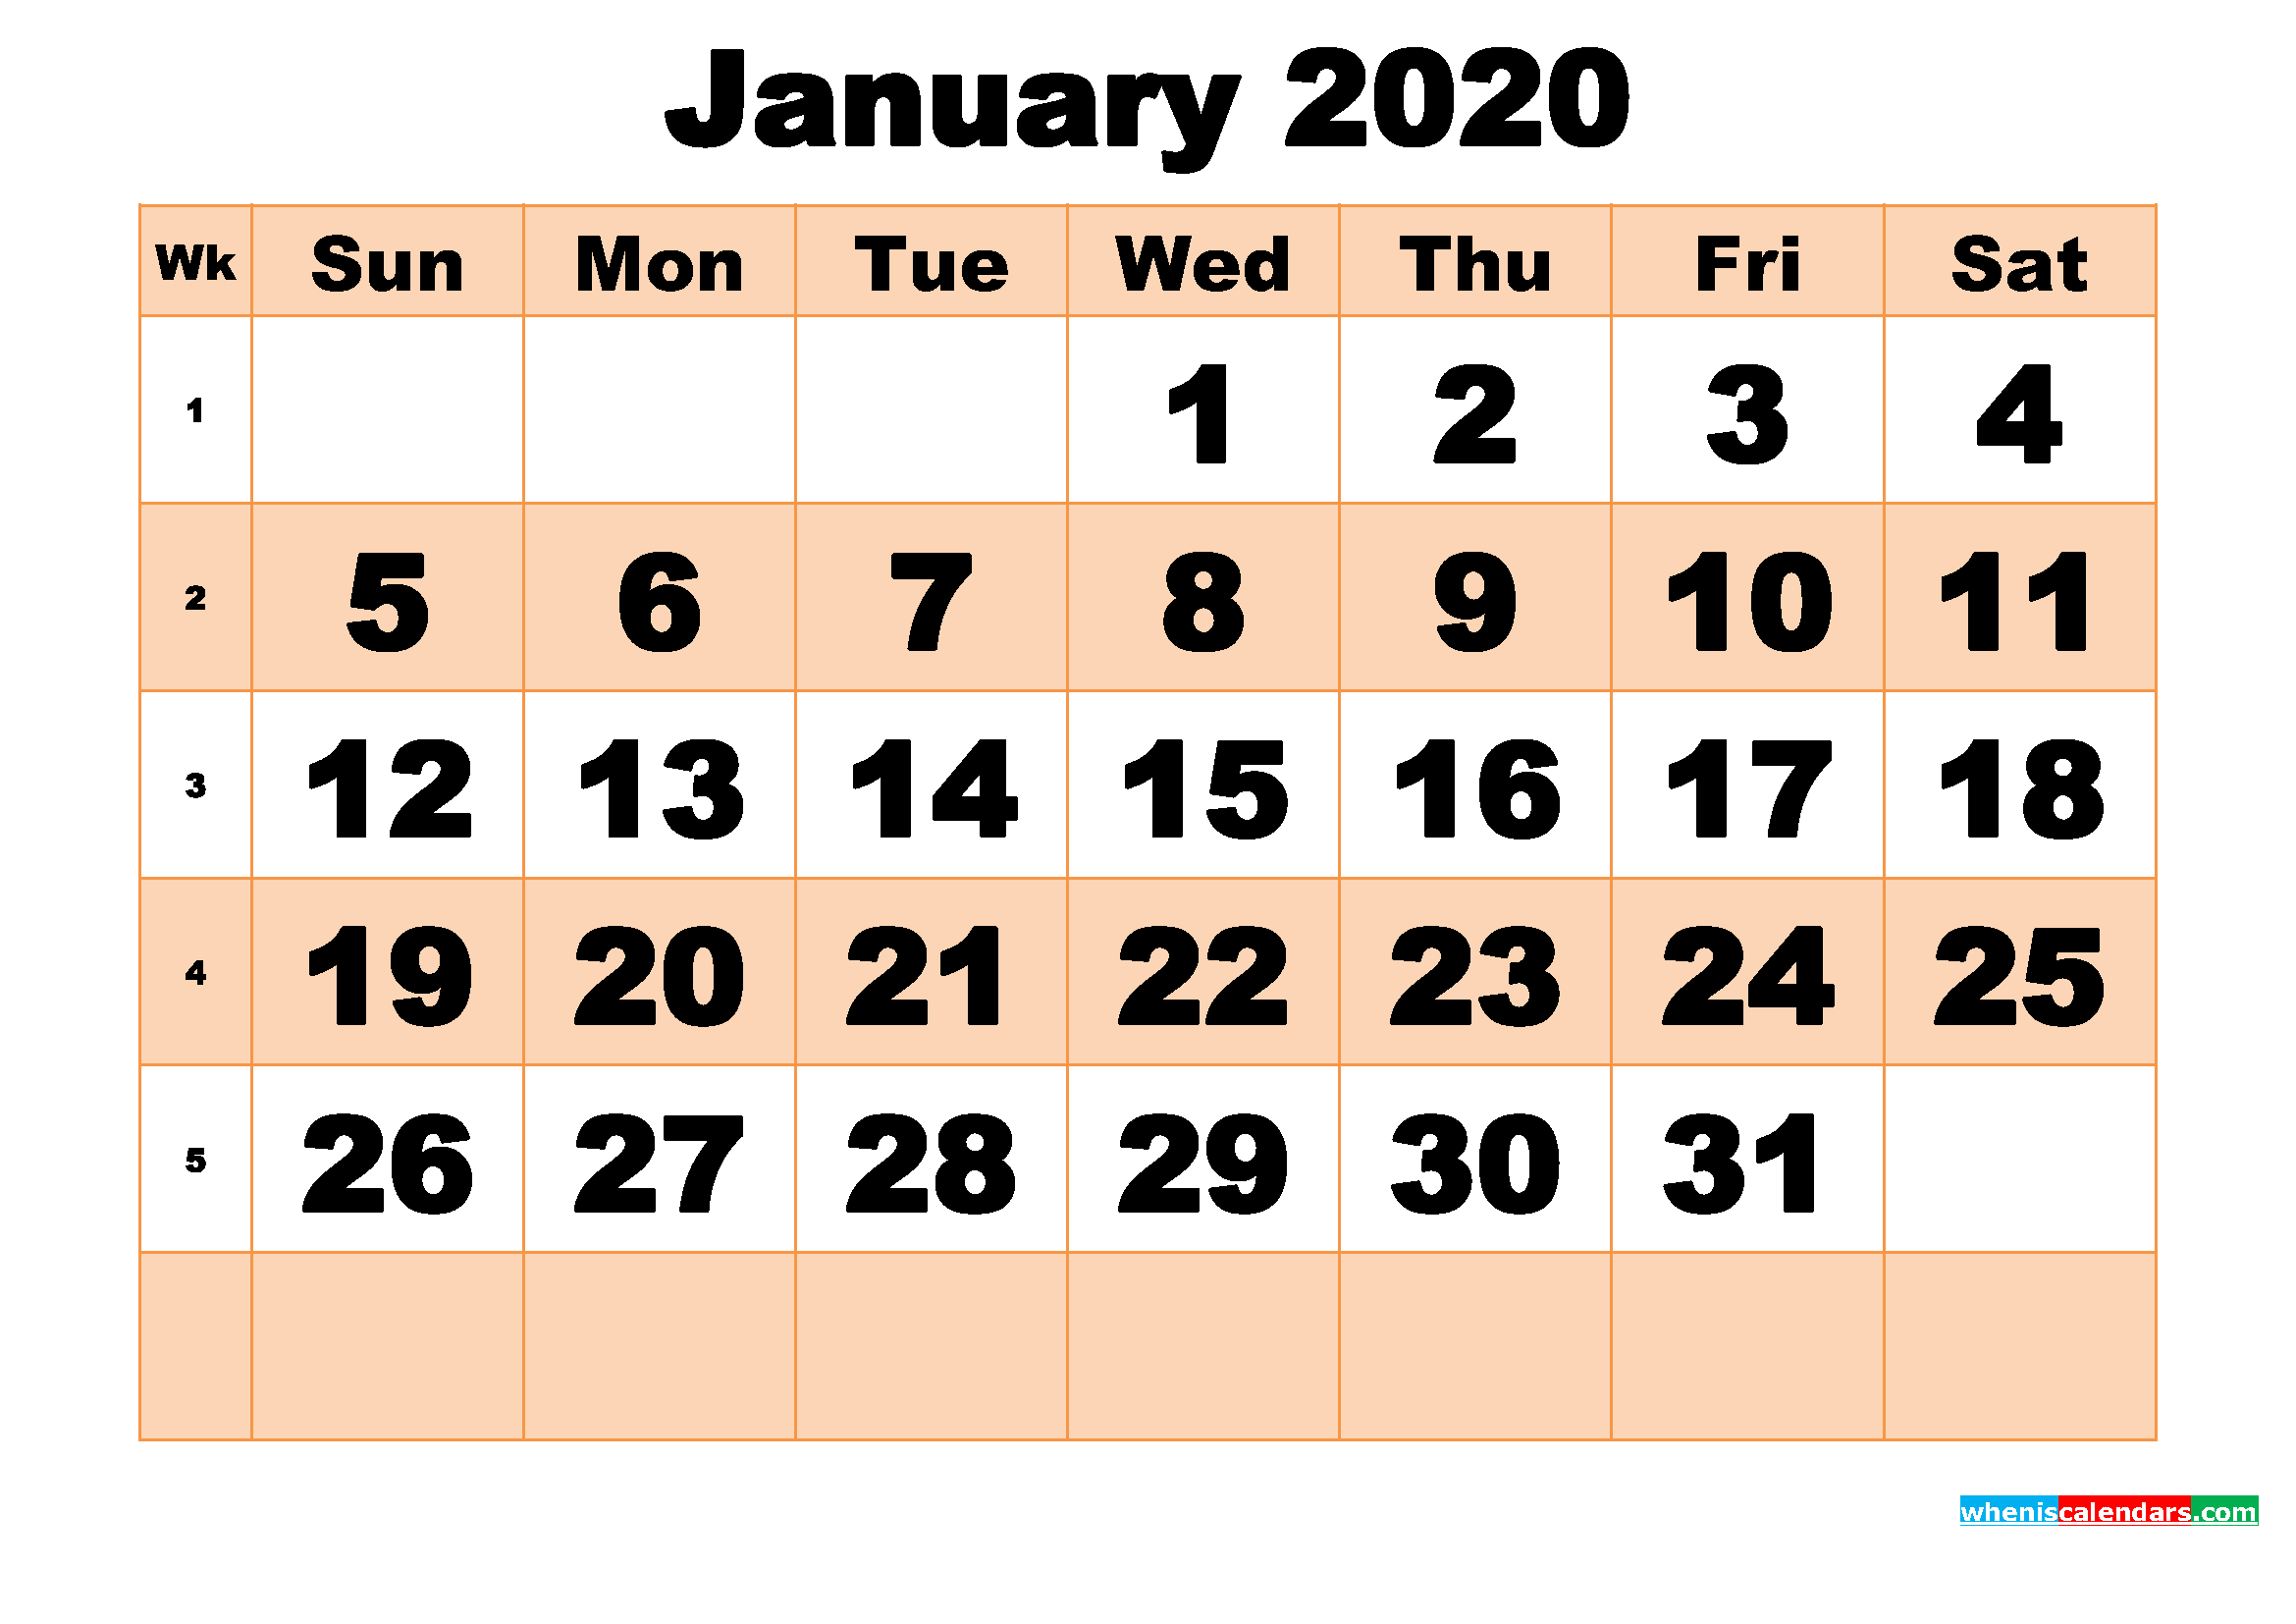 Free Printable January 2020 Calendar Template Word, PDF